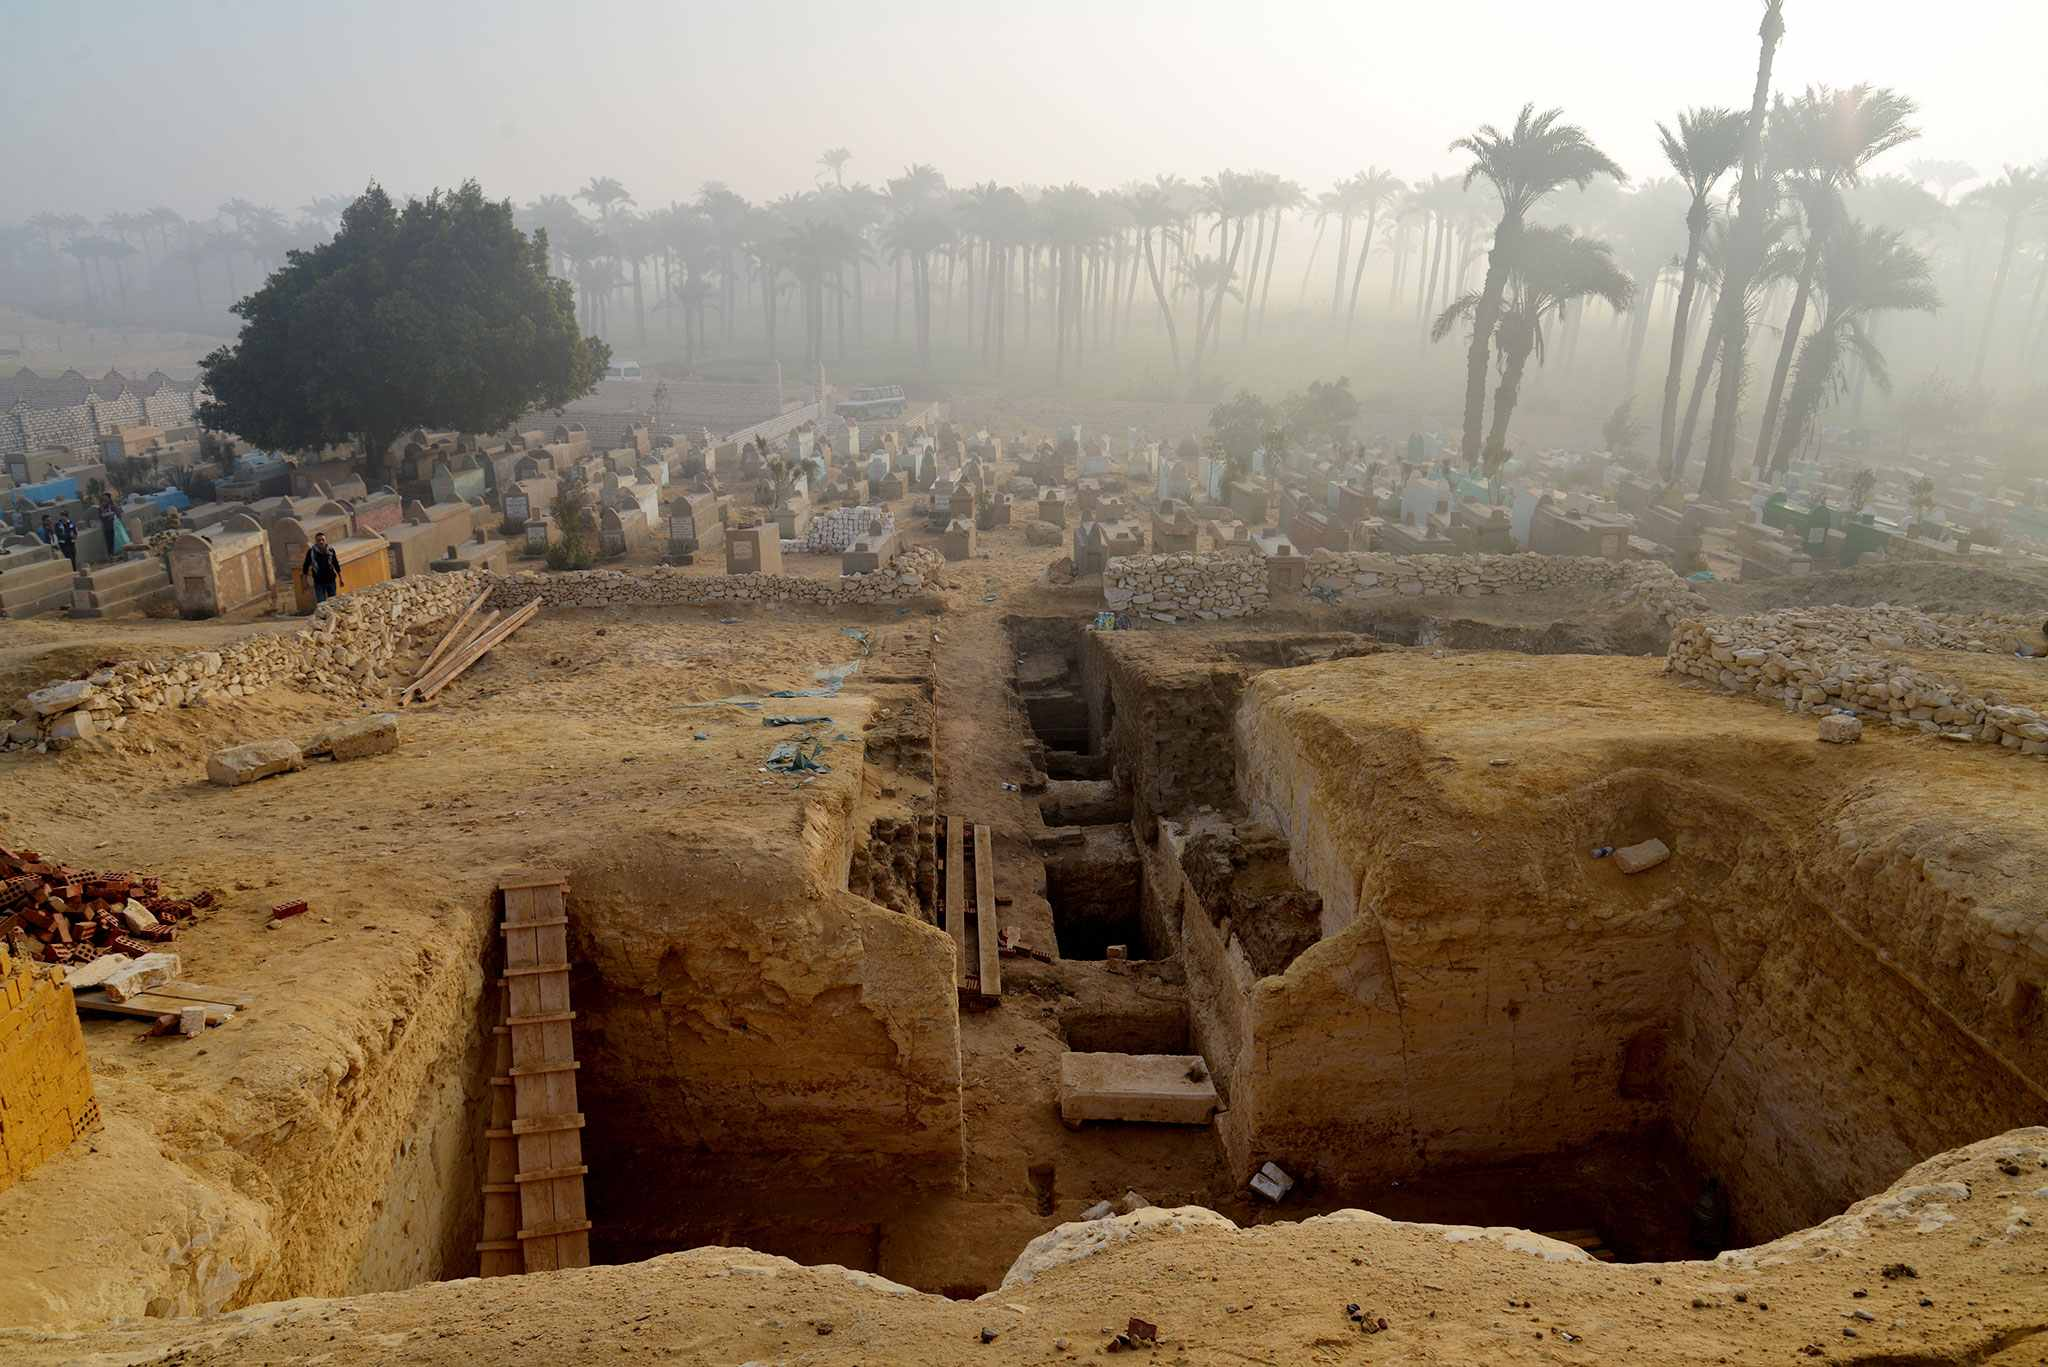 802 tombs discovered in necropolis of Lisht in Egypt, now they discover 'Book of the Dead' 2